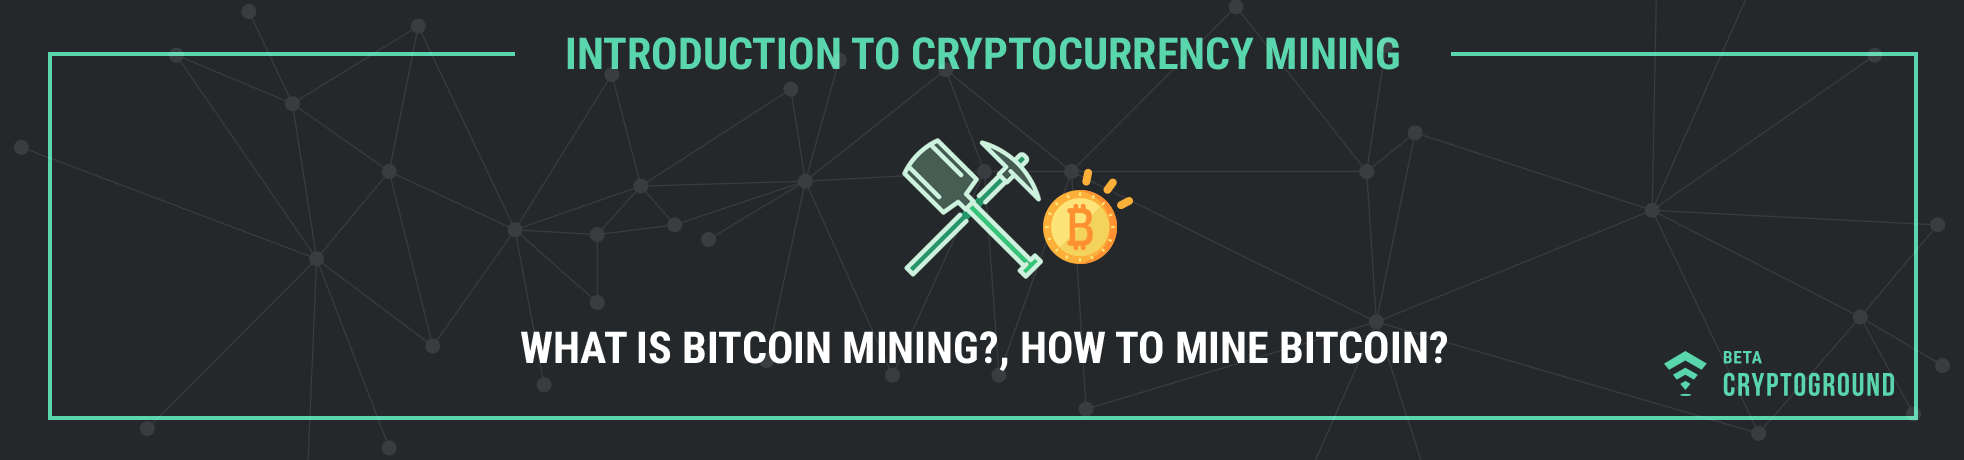 What is Bitcoin Mining? How to Mine Bitcoin?